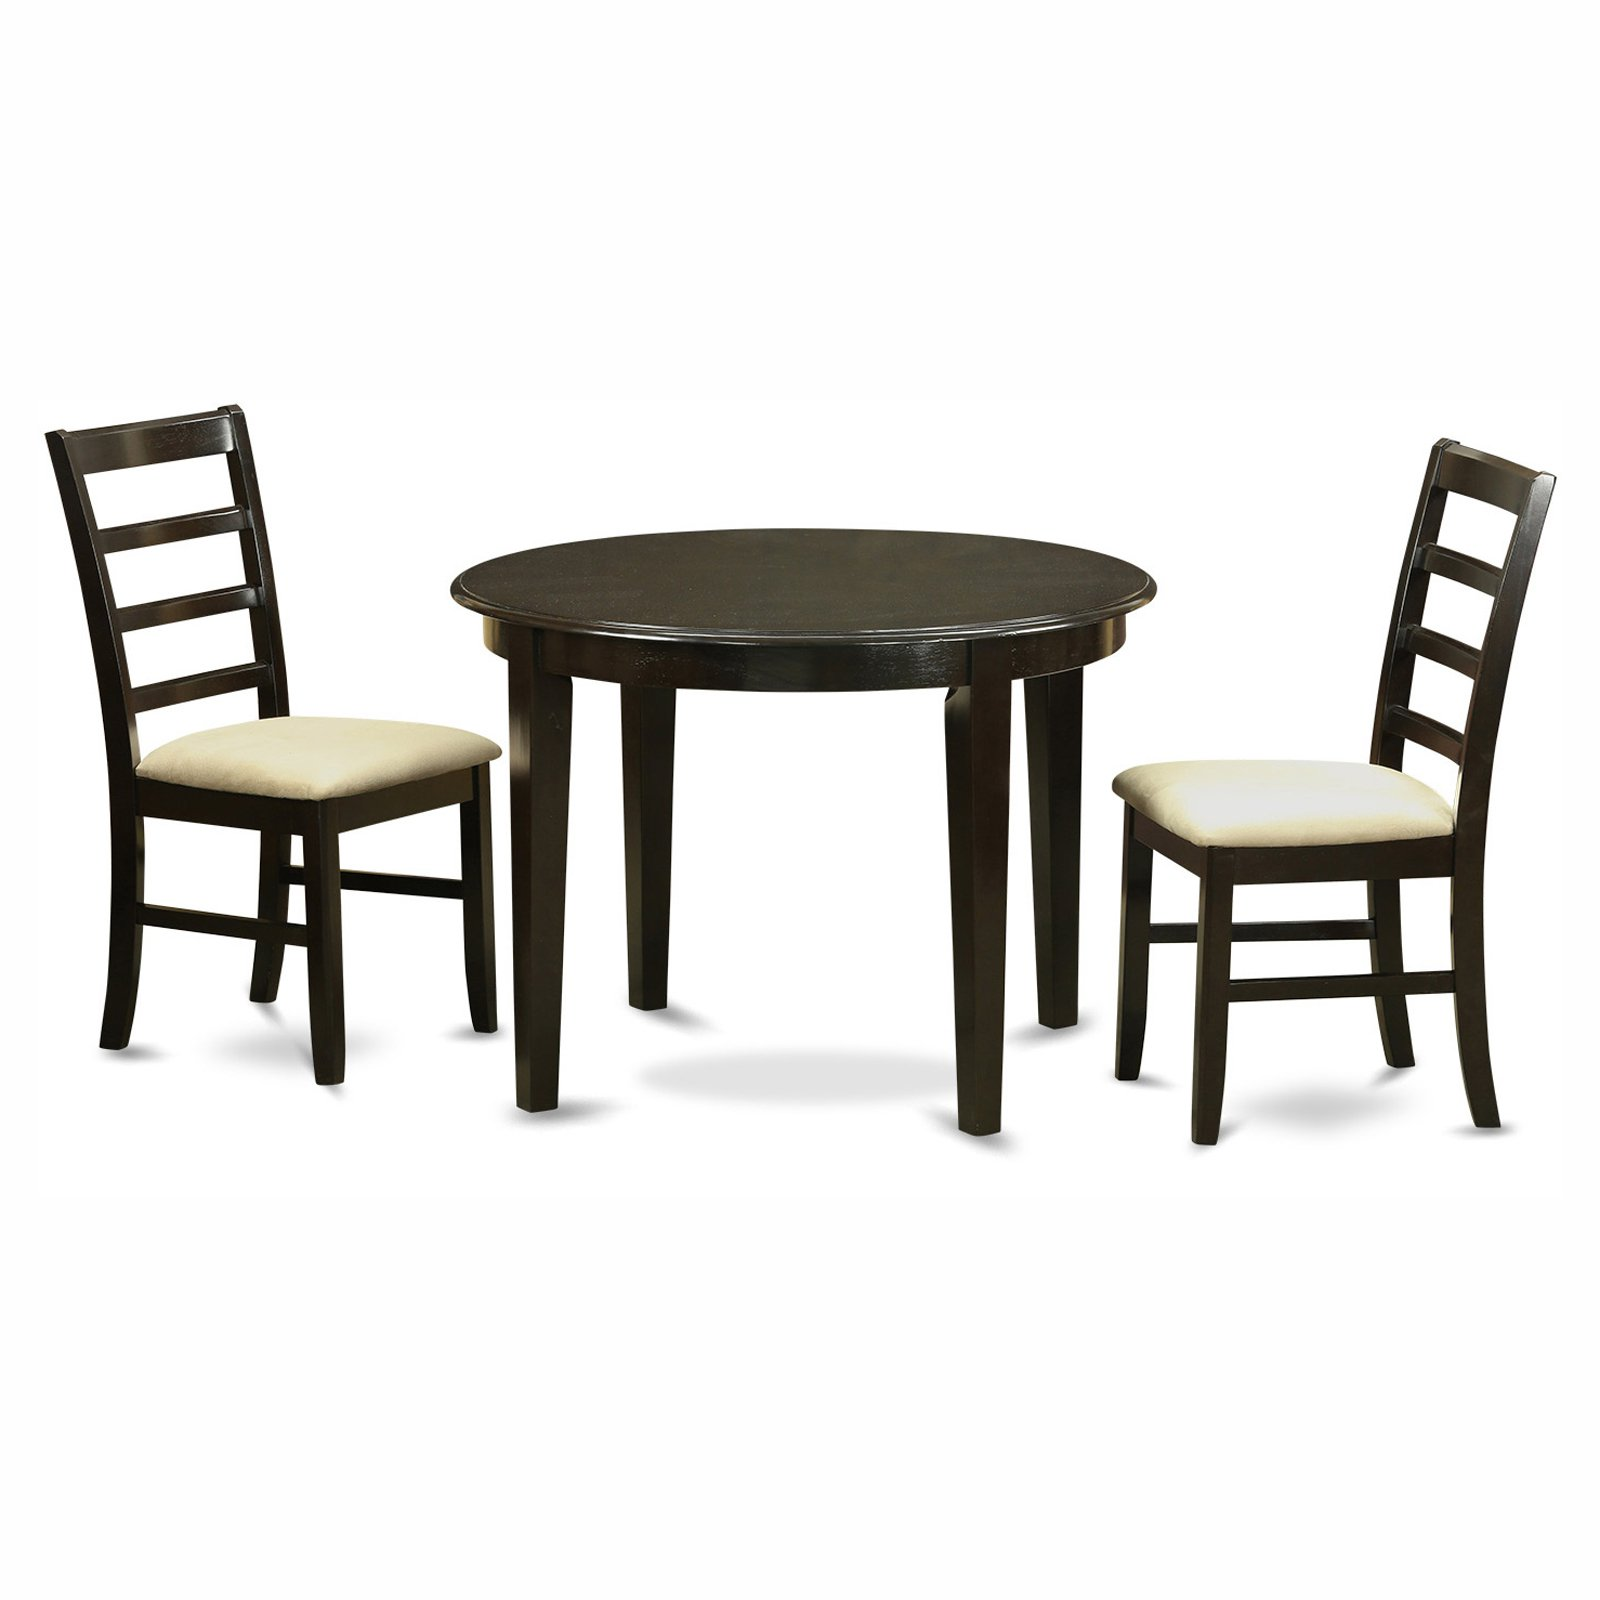 East West Furniture Boston 3 Piece Round Dining Table Set with Parfait Microfiber Seat Chairs